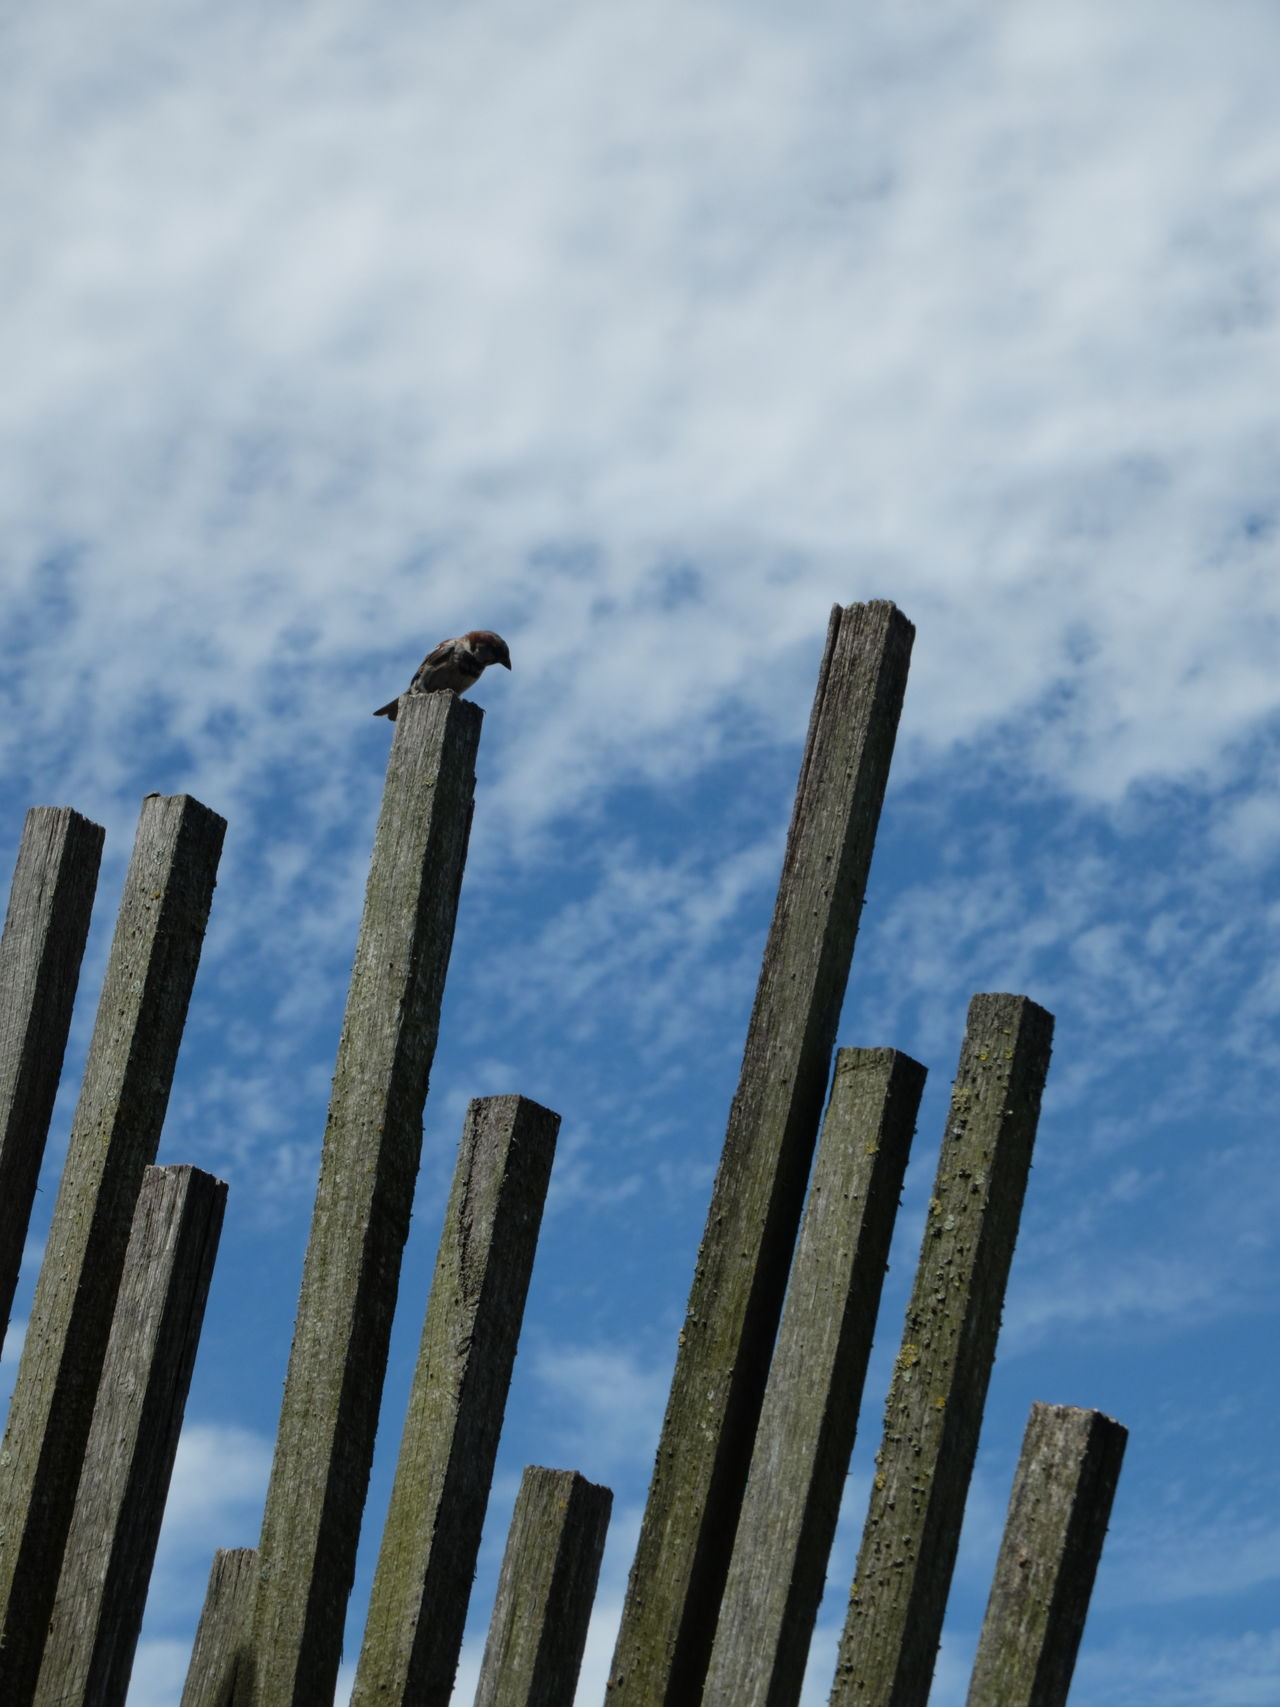 Alone Chilling Close-up Cloud - Sky Crossroads Day Deep Thoughts Fence Future Lonely Low Angle View No People Outdoors Peace Picket Fence Pondering Recharge Relax Resting Sky Thinking Tranquility Wondering Wood - Material Wooden Post